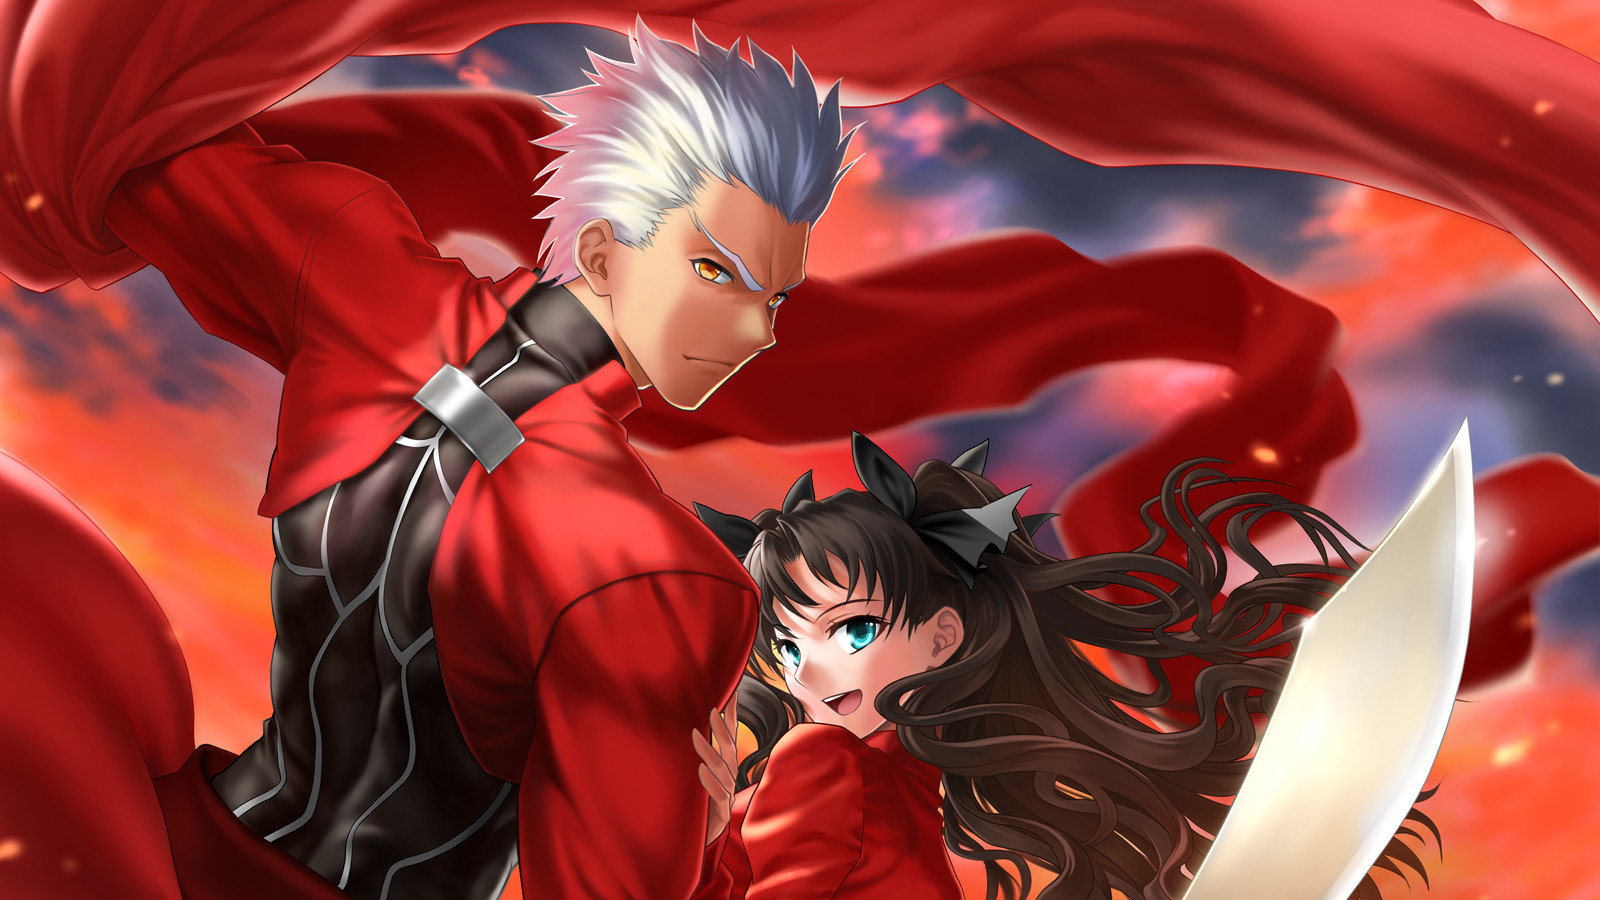 Download hd 1600x900 Fate/Stay Night desktop background ID:468640 for free